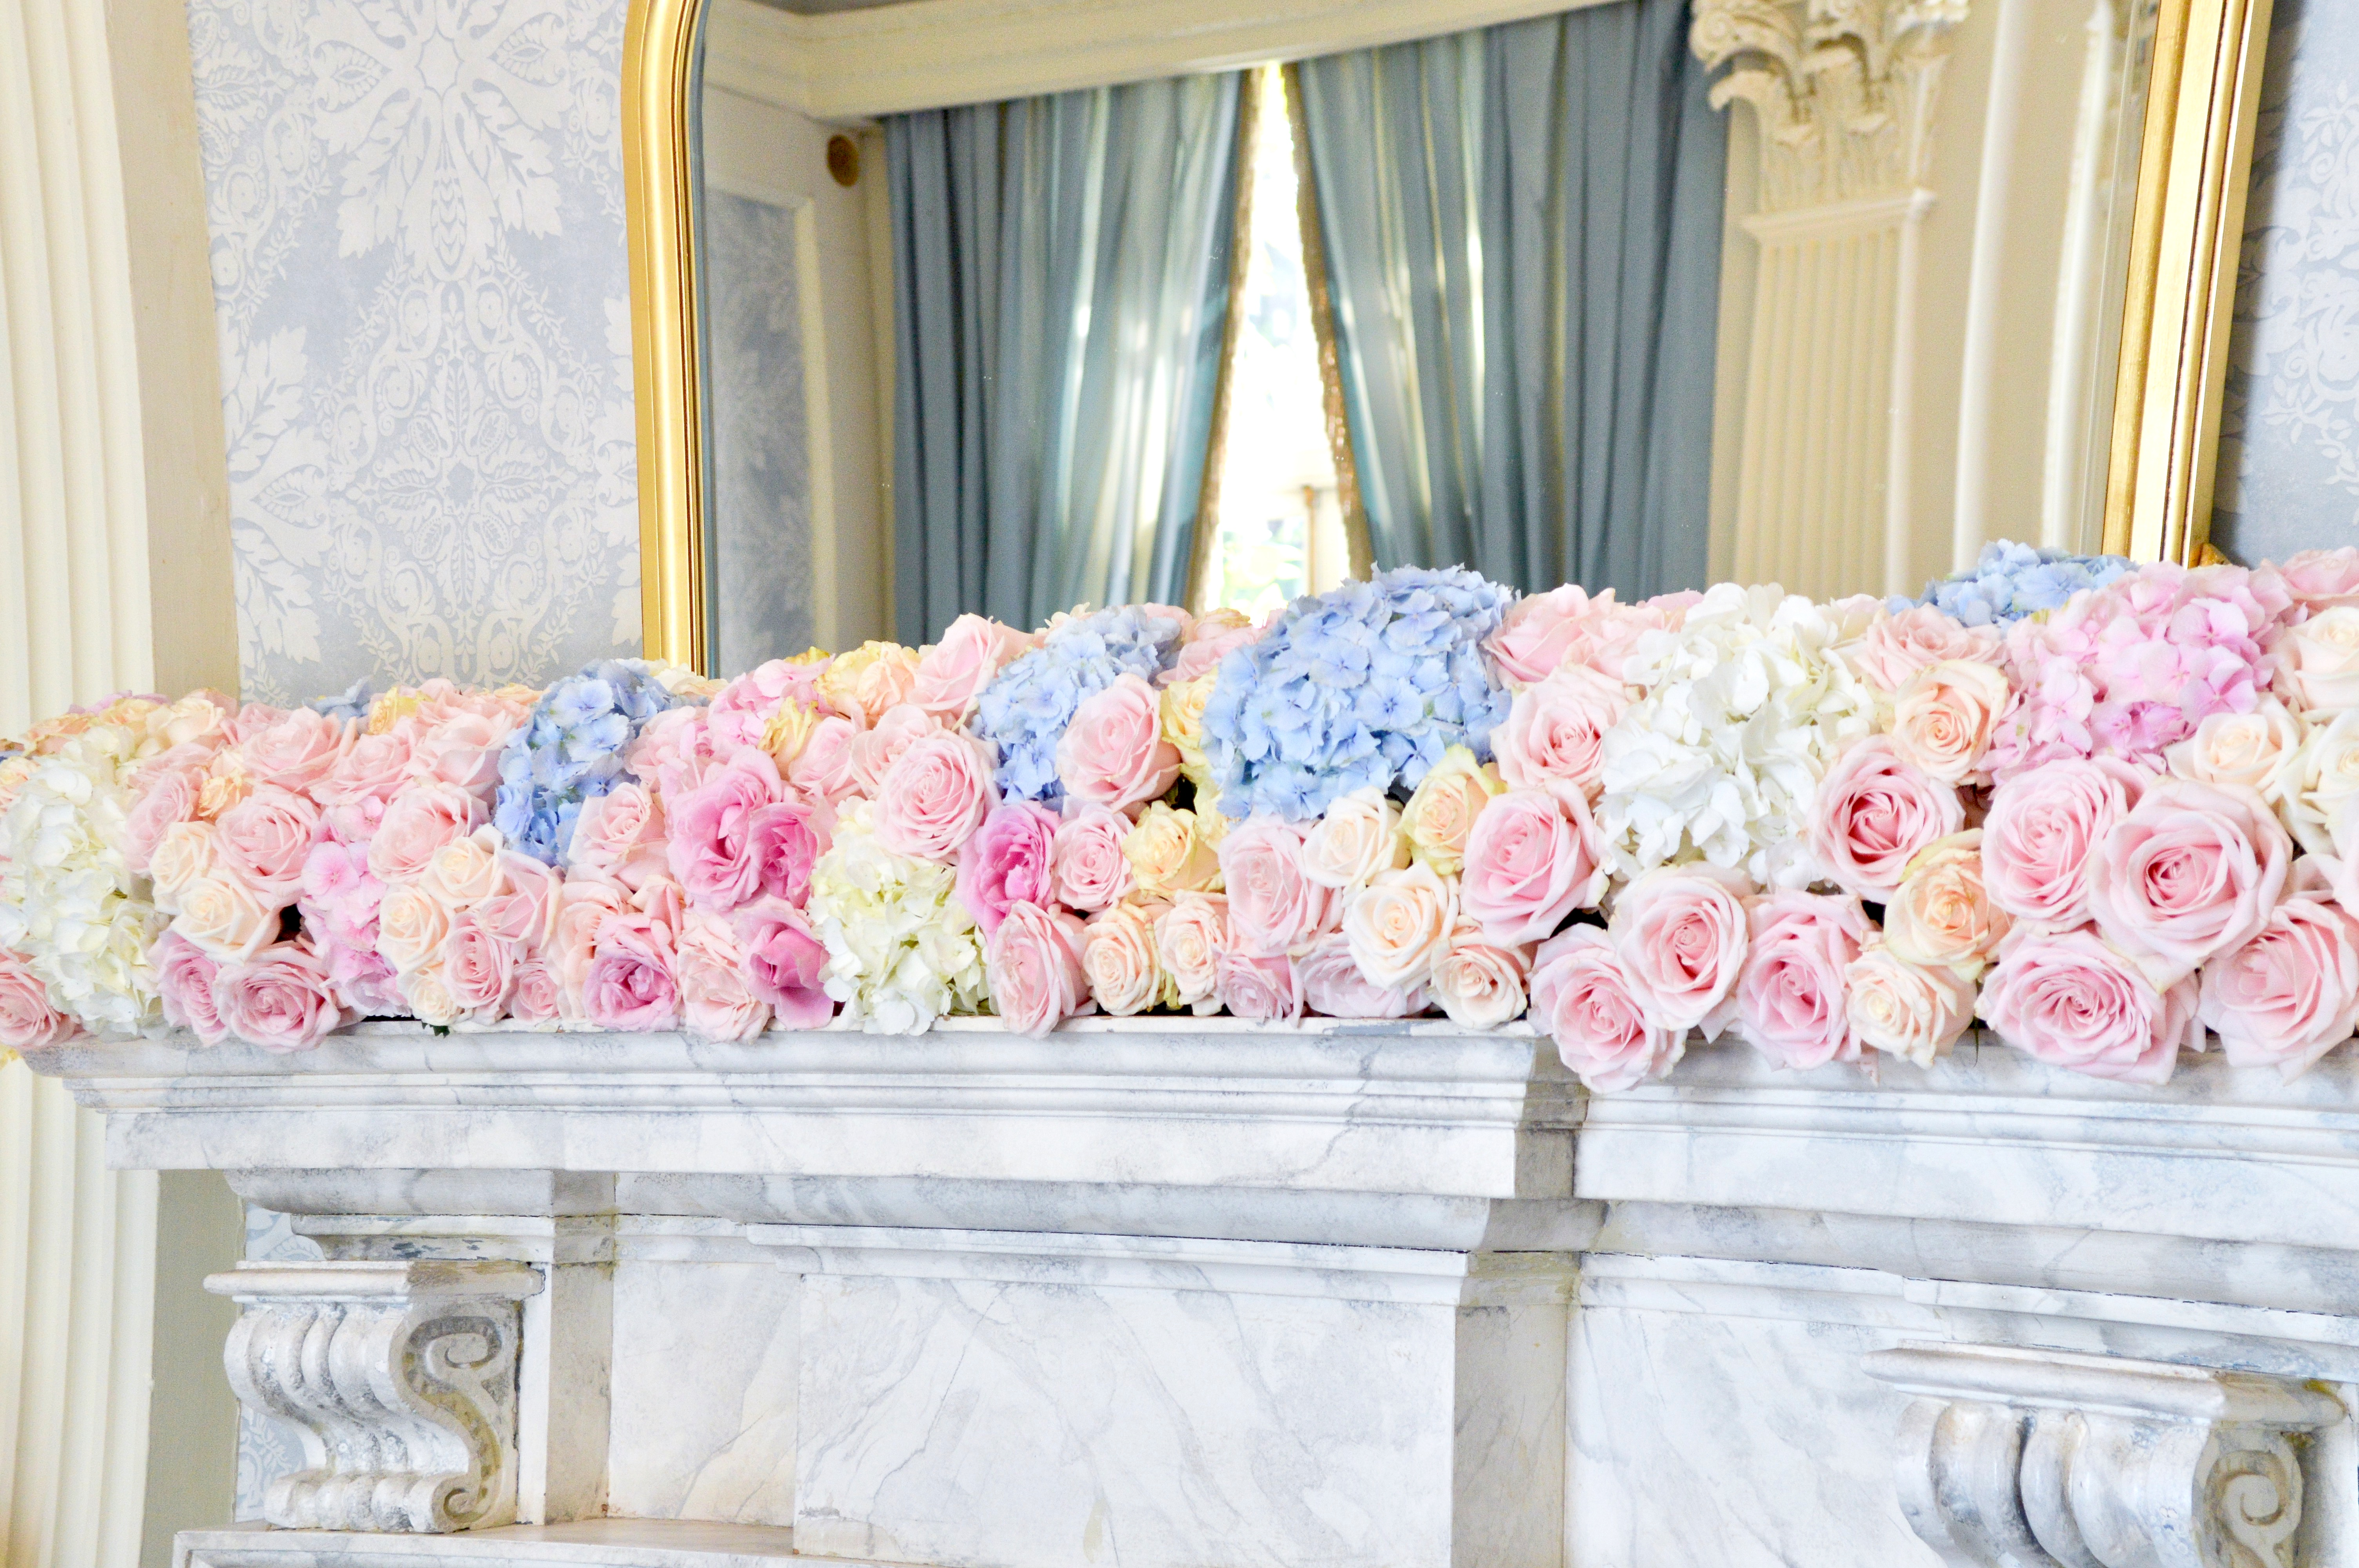 Dusty blue and pink wedding fireplace arrangements wedding ceremony aisle tall centrepieces Cherie Kelly cakes London Hedsor House 3